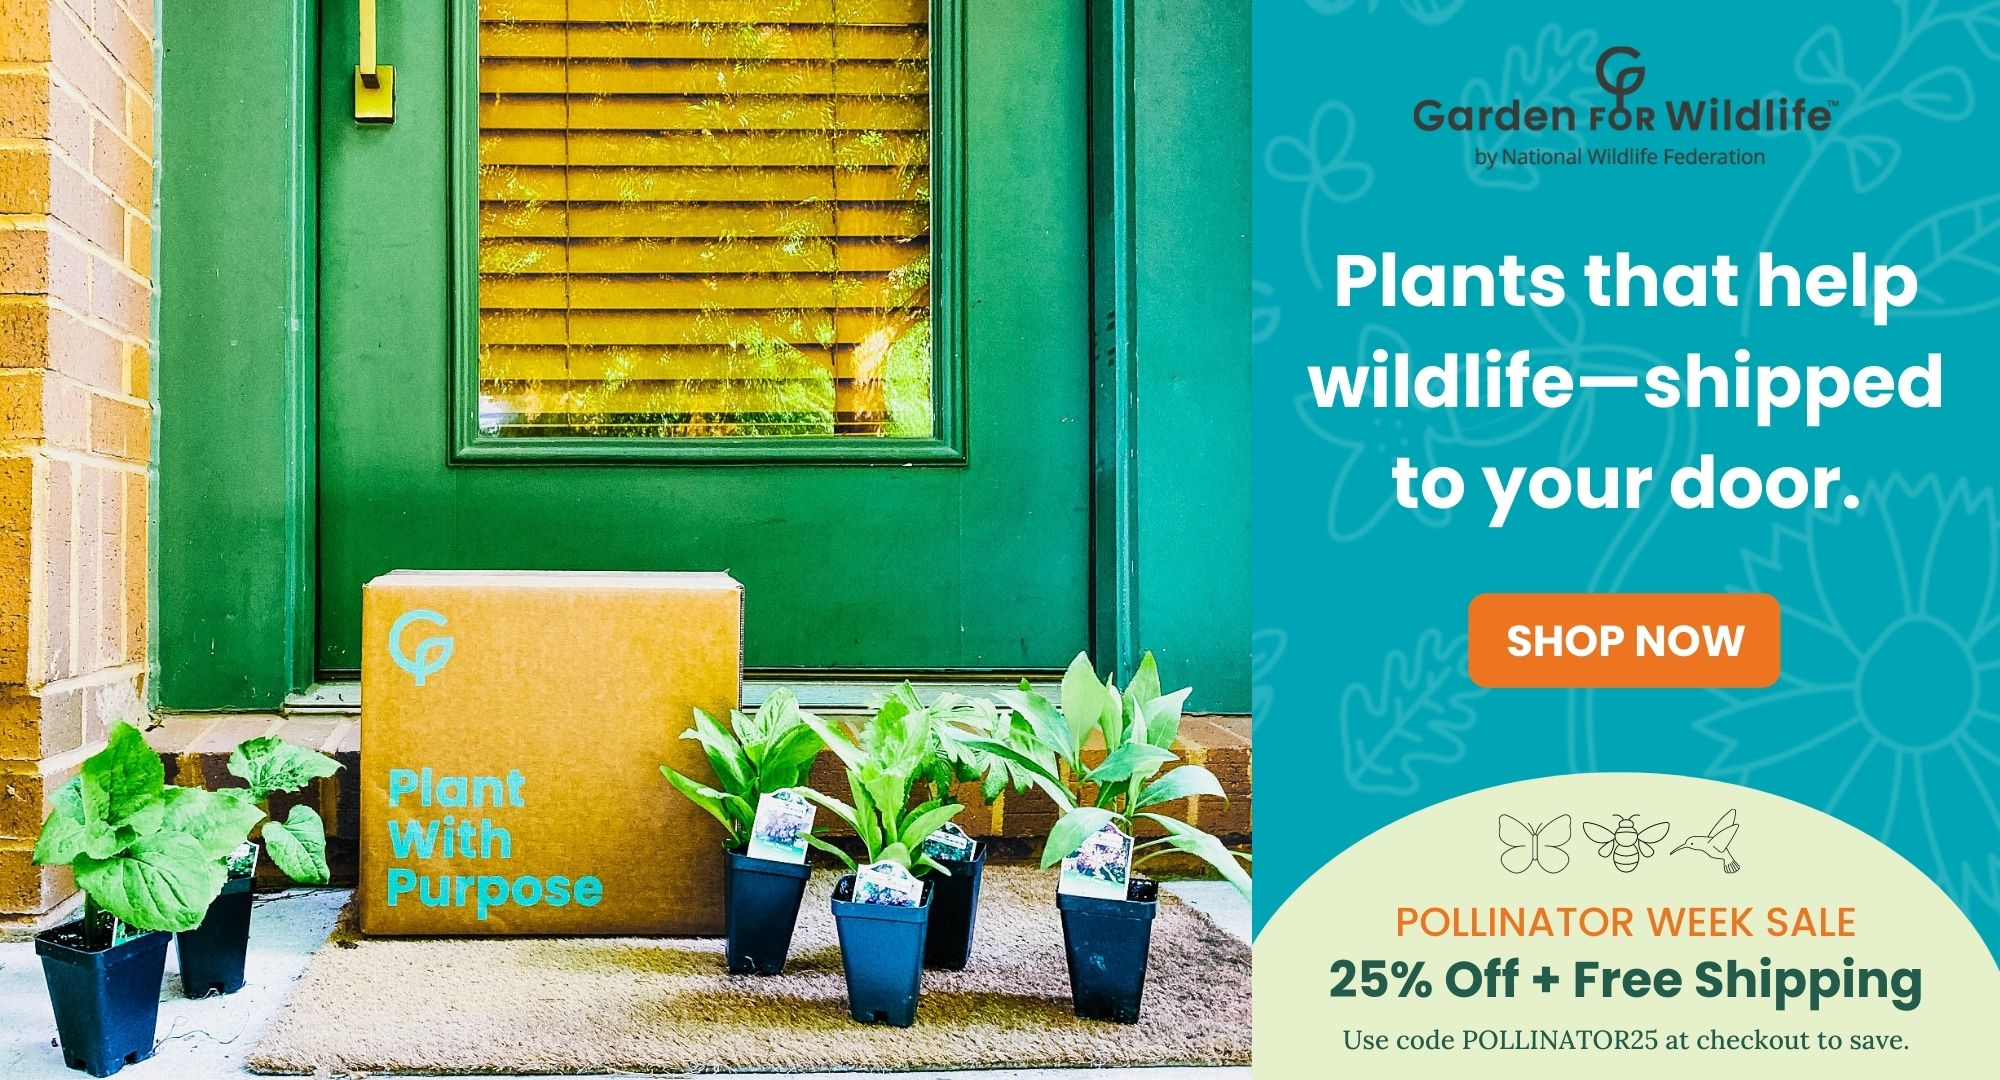 Garden for Wildlife header image